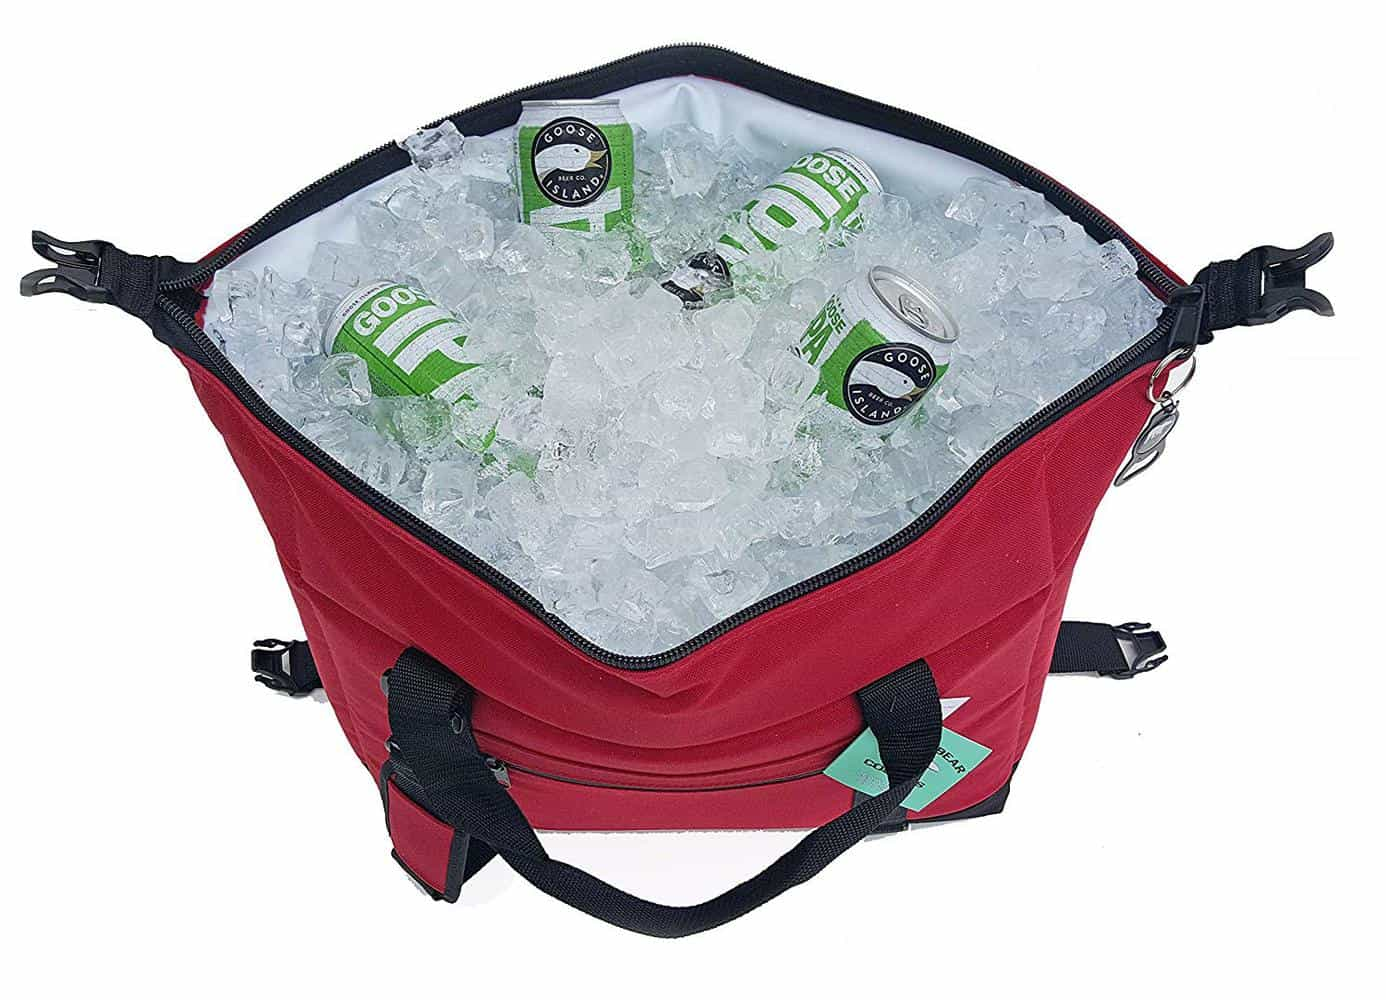 Polar Bear soft sided cooler